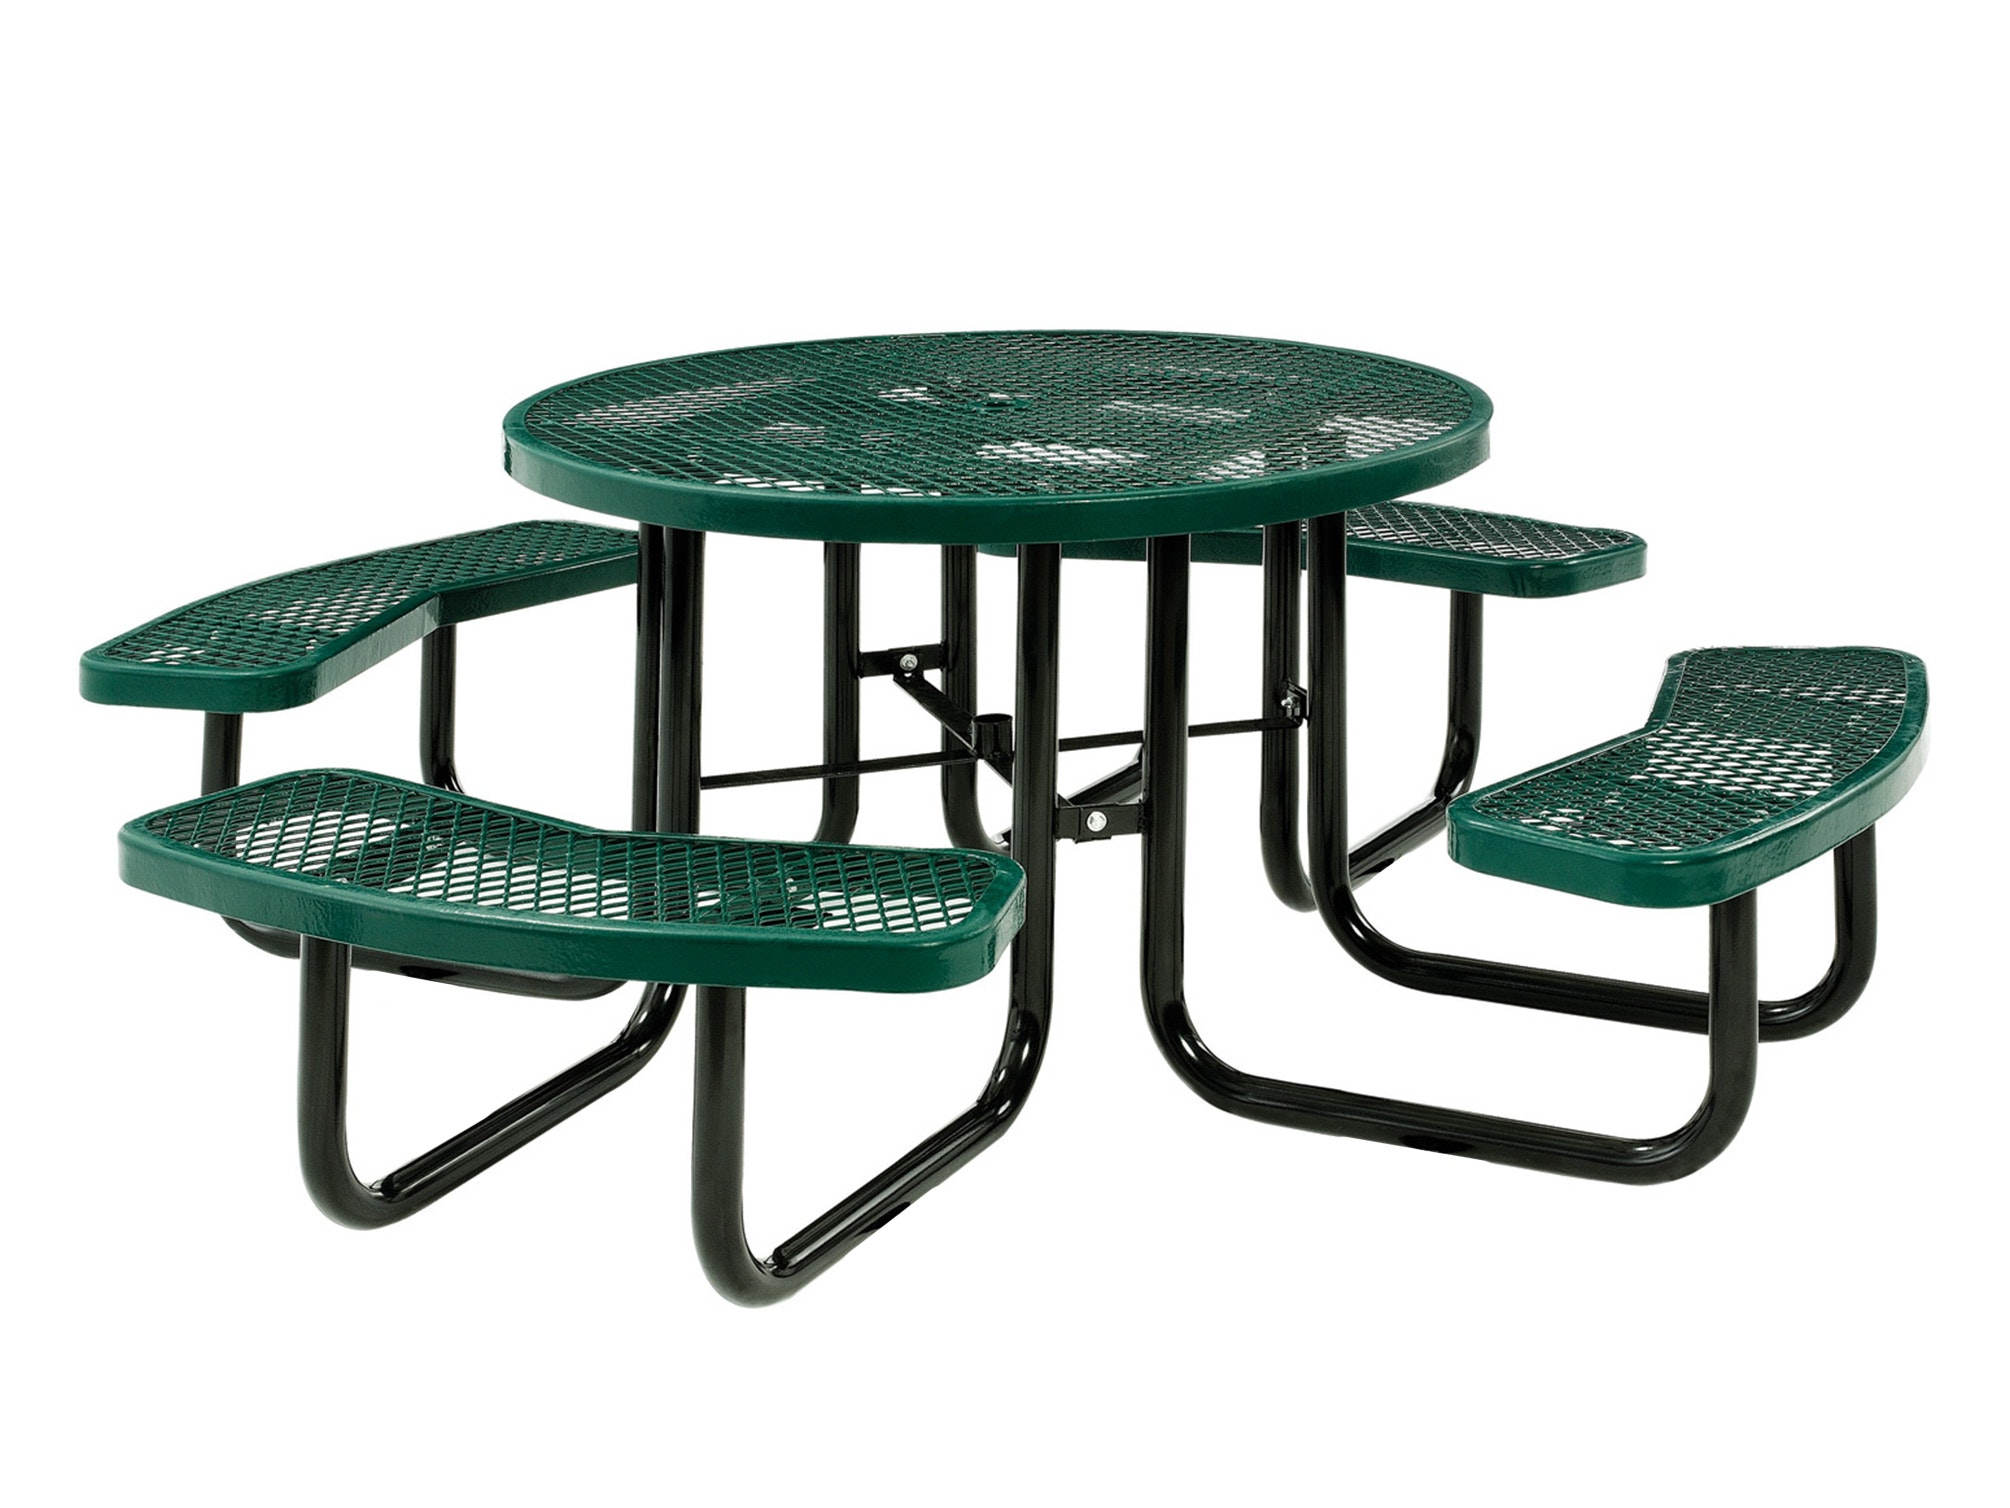 Picnic Table Round 8 Seater - Green